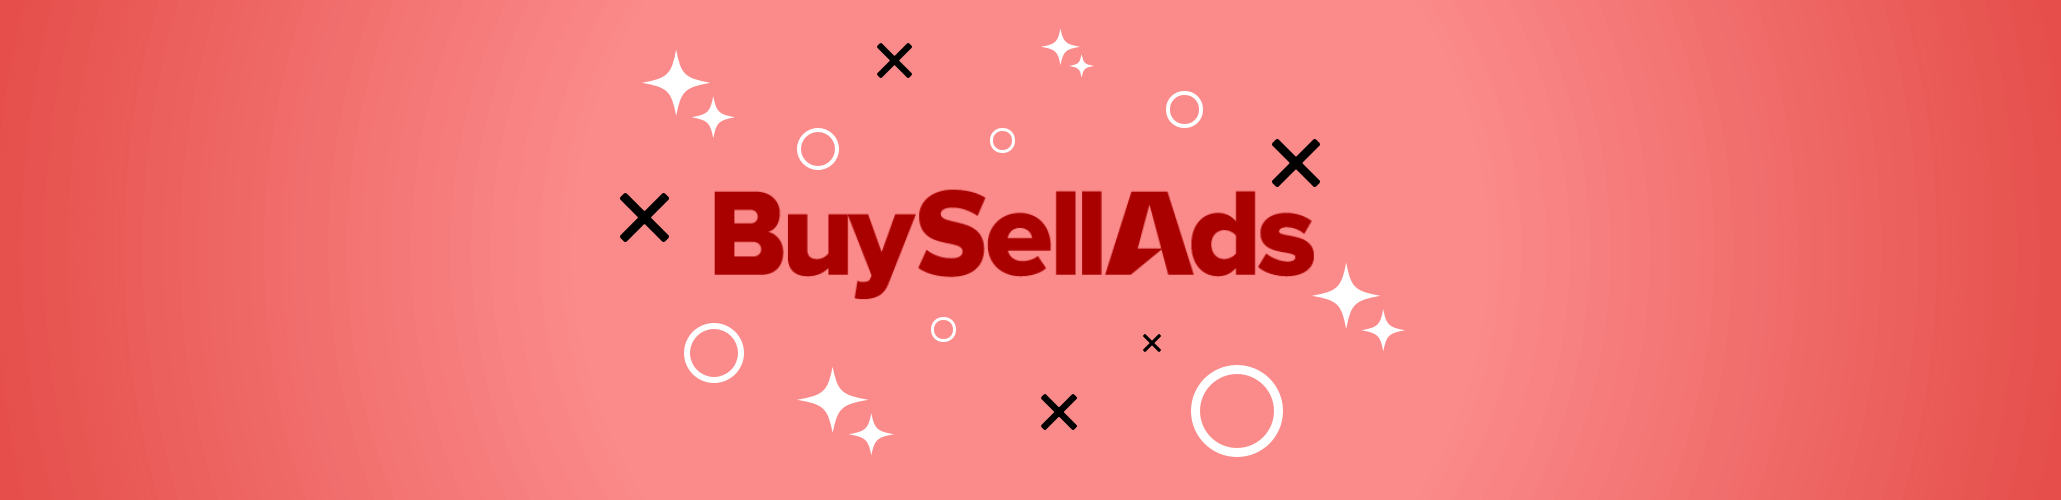 BuySellAds advertisement marketplace